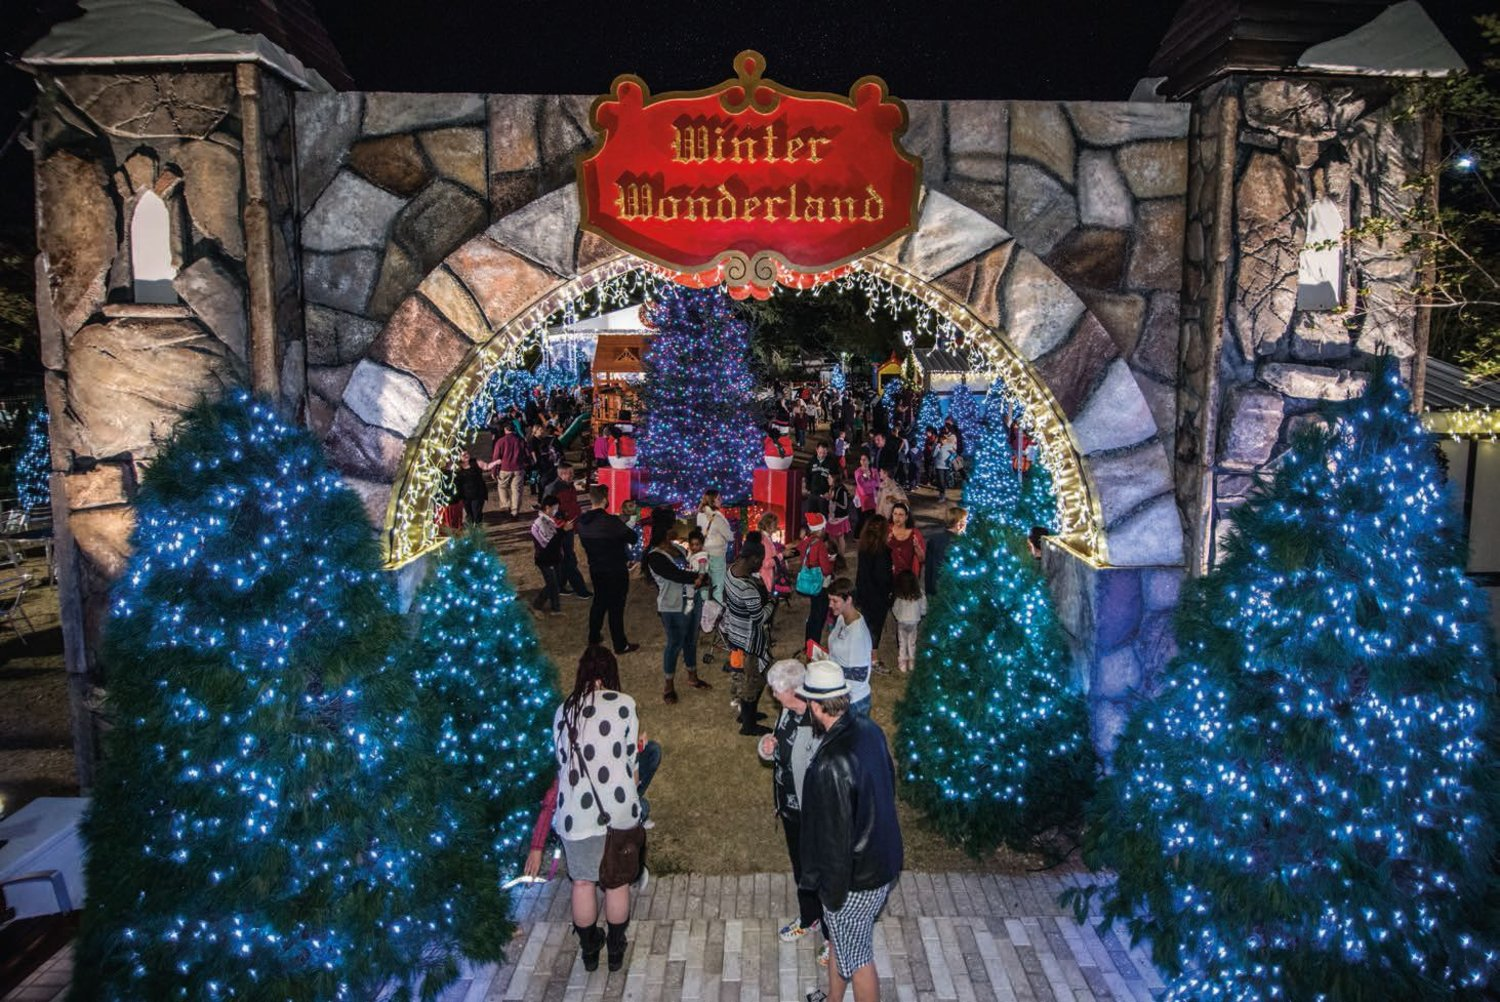 winter wonderland is back bring on the kids winter wonderland is back bring on the